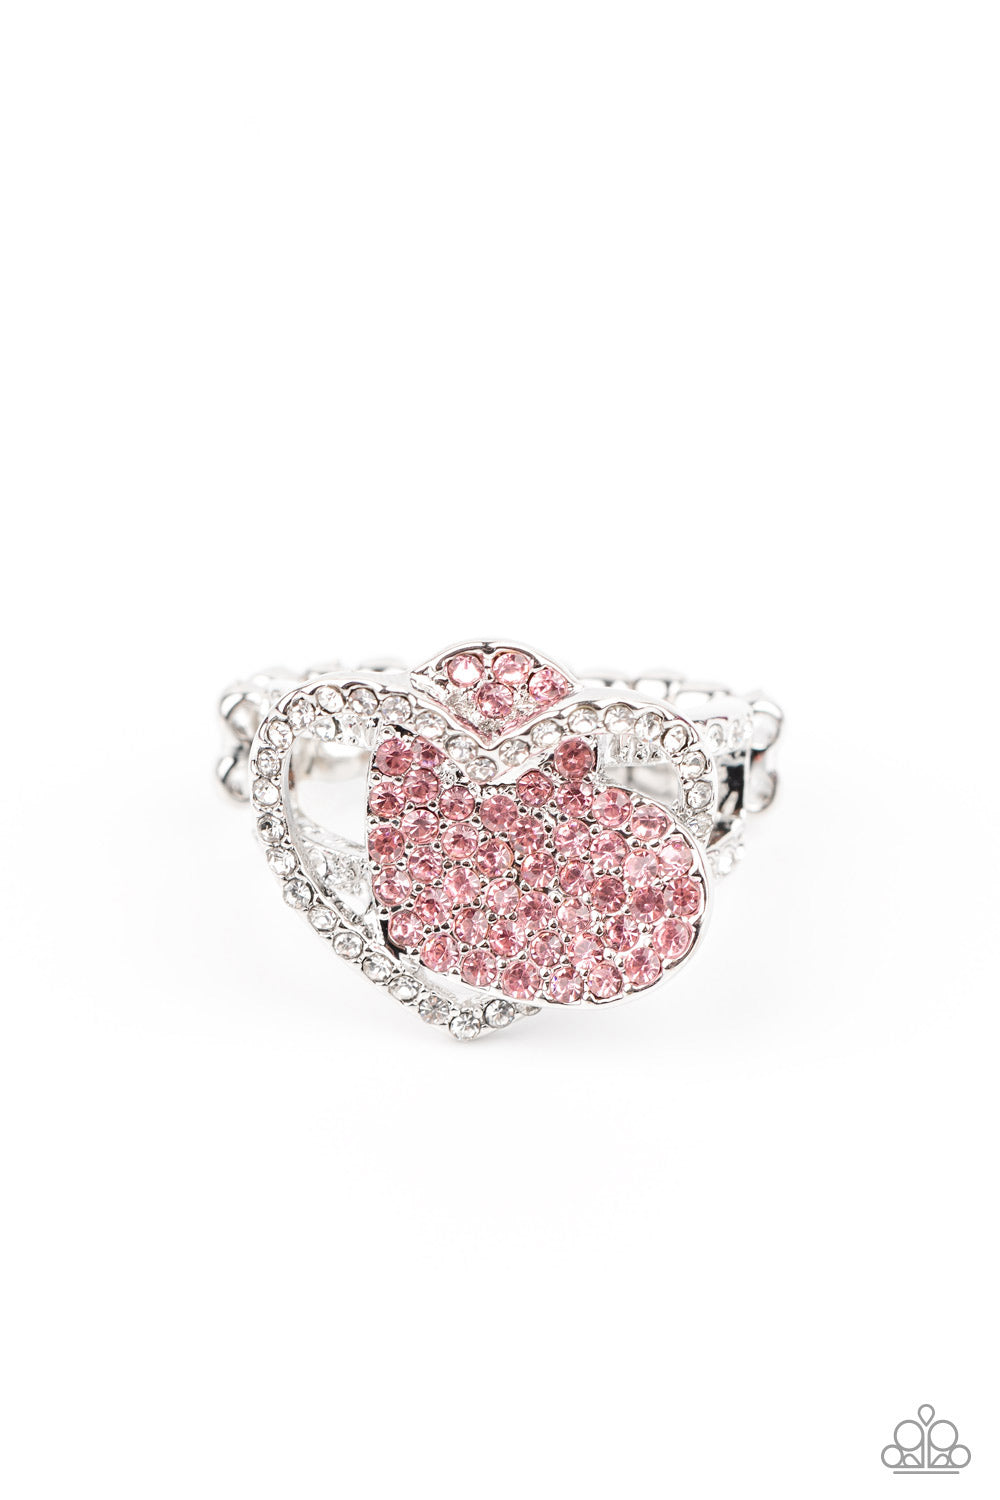 five-dollar-jewelry-million-dollar-matchmaker-pink-ring-paparazzi-accessories